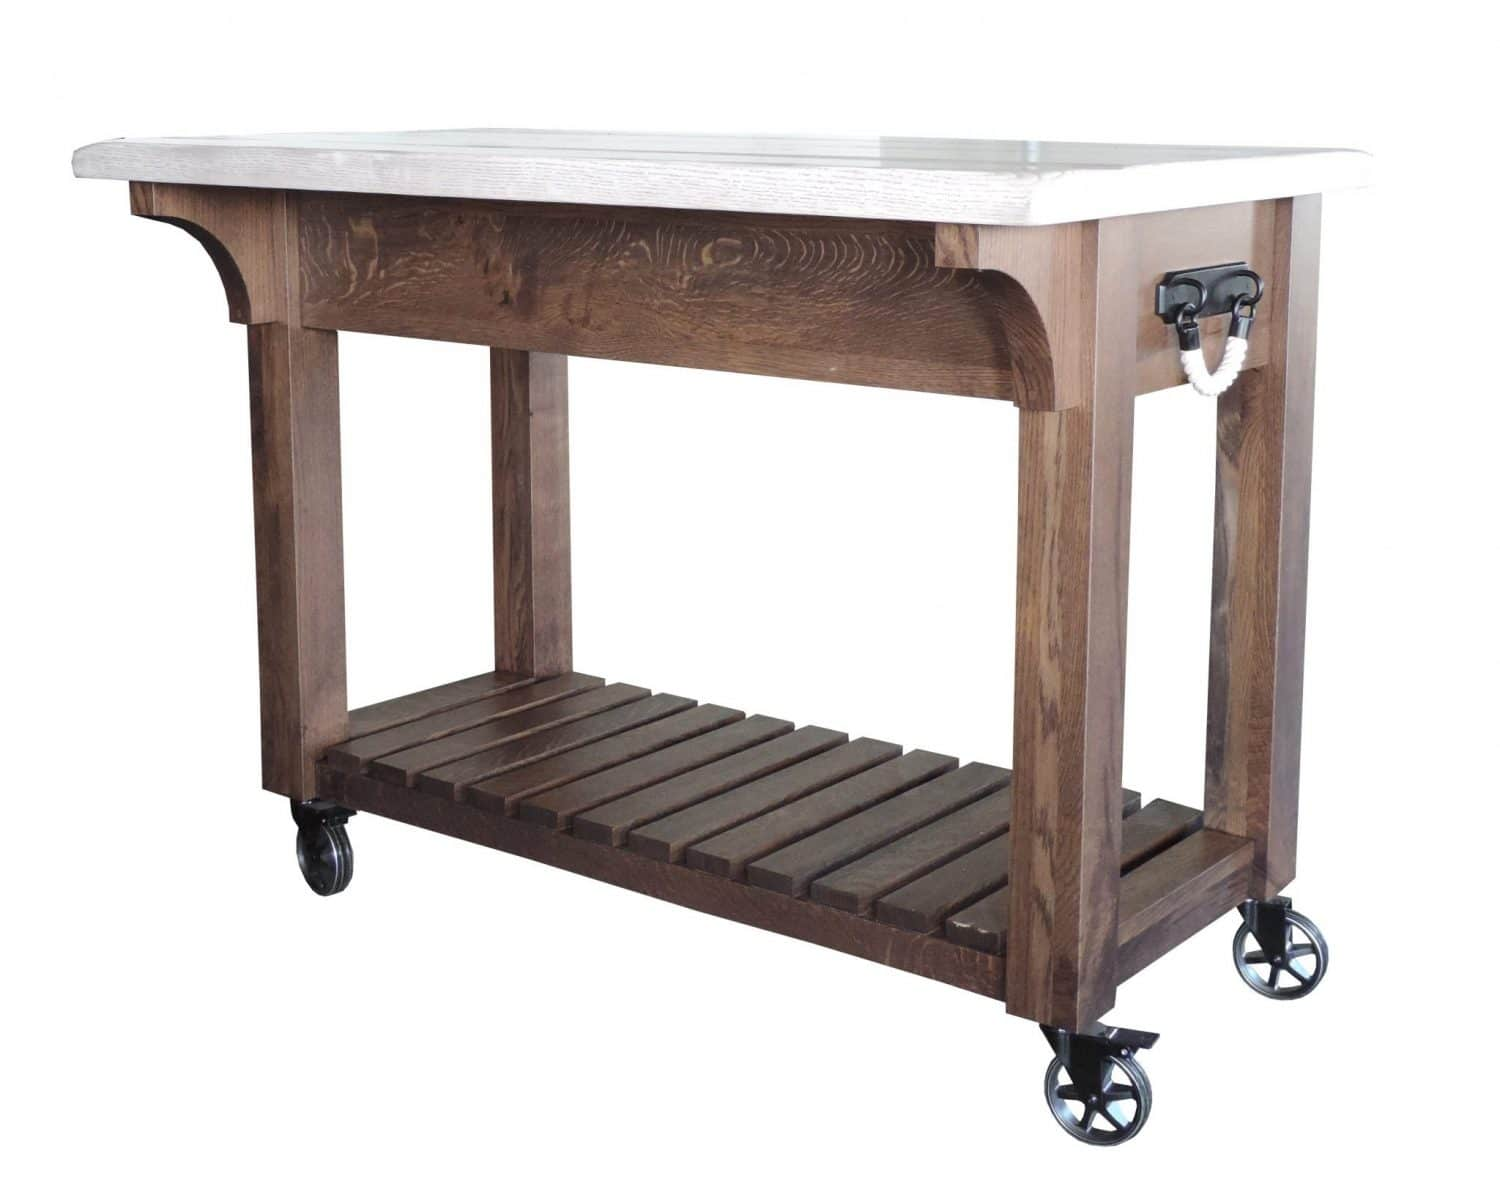 Timberline island in distressed oak the amish furniture company